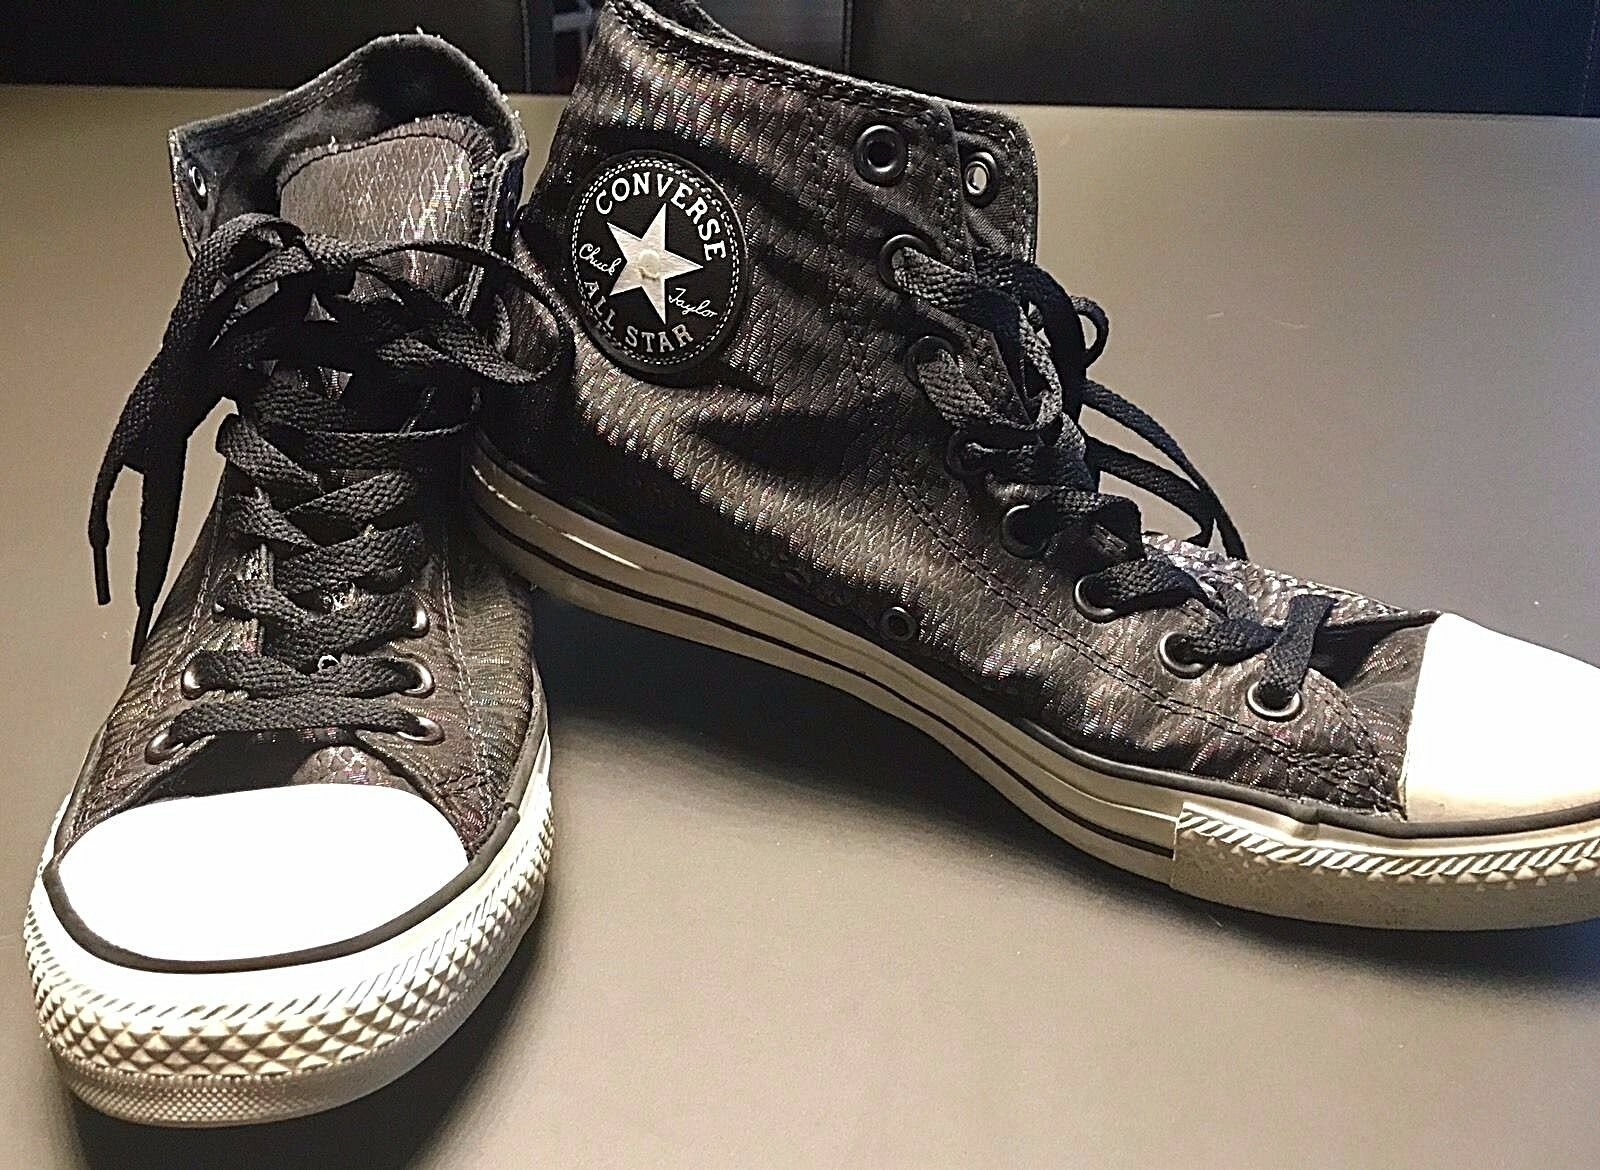 Converse All Star Chuck Taylor Metallic Peacock Hi Top Sneakers Women's Size 11